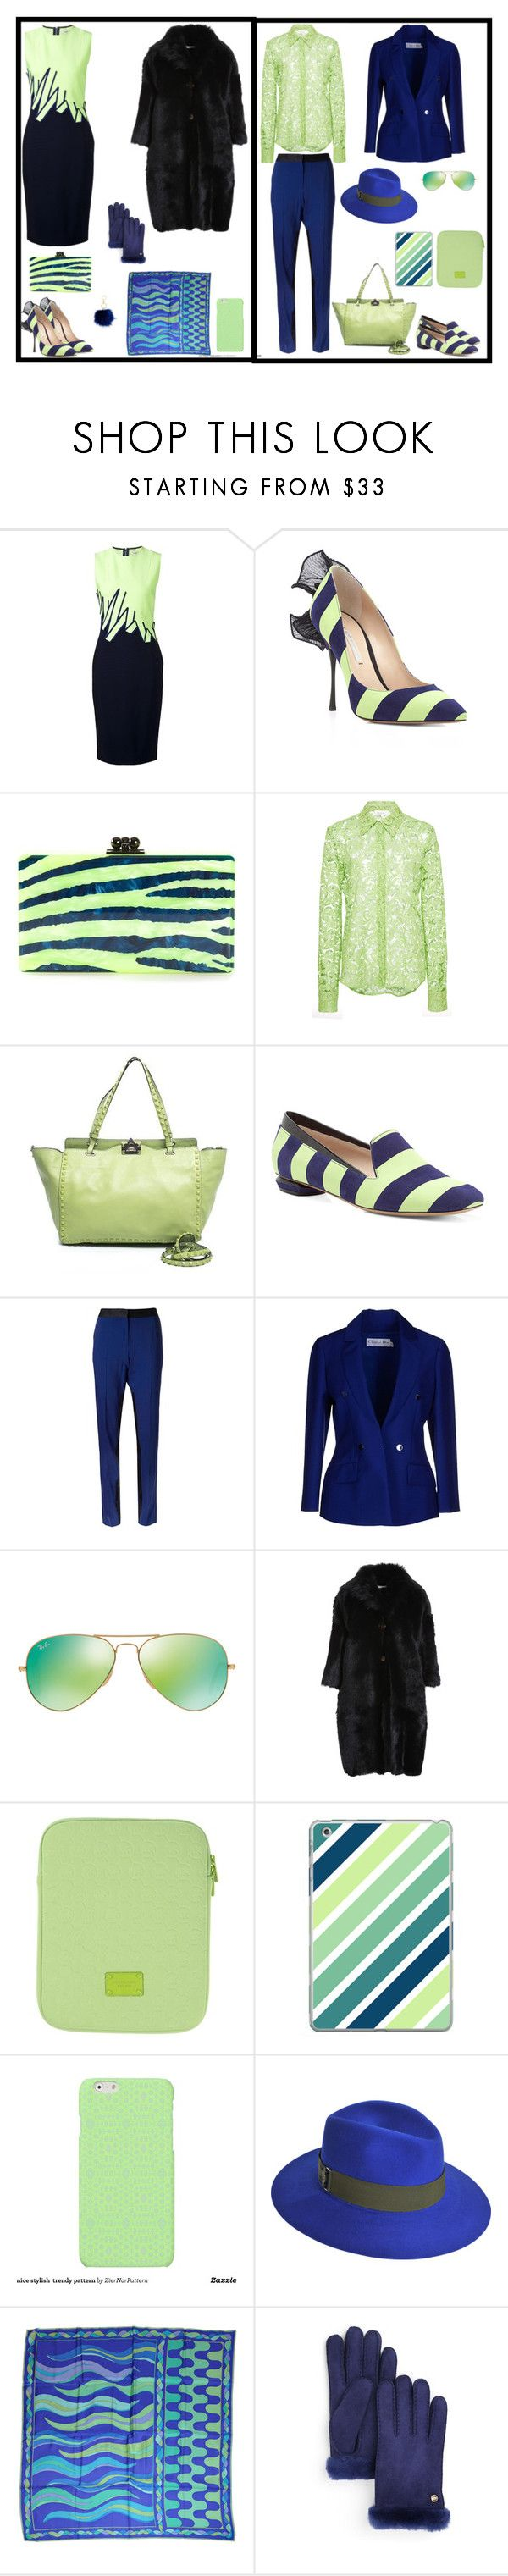 """""""scarpe a strisce blu verde acido"""" by silvia-cavellini ❤ liked on Polyvore featuring Thierry Mugler, Nicholas Kirkwood, Edie Parker, Isa Arfen, Valentino, Prabal Gurung, Christian Dior, Ray-Ban, Michael Kors and Casetify"""